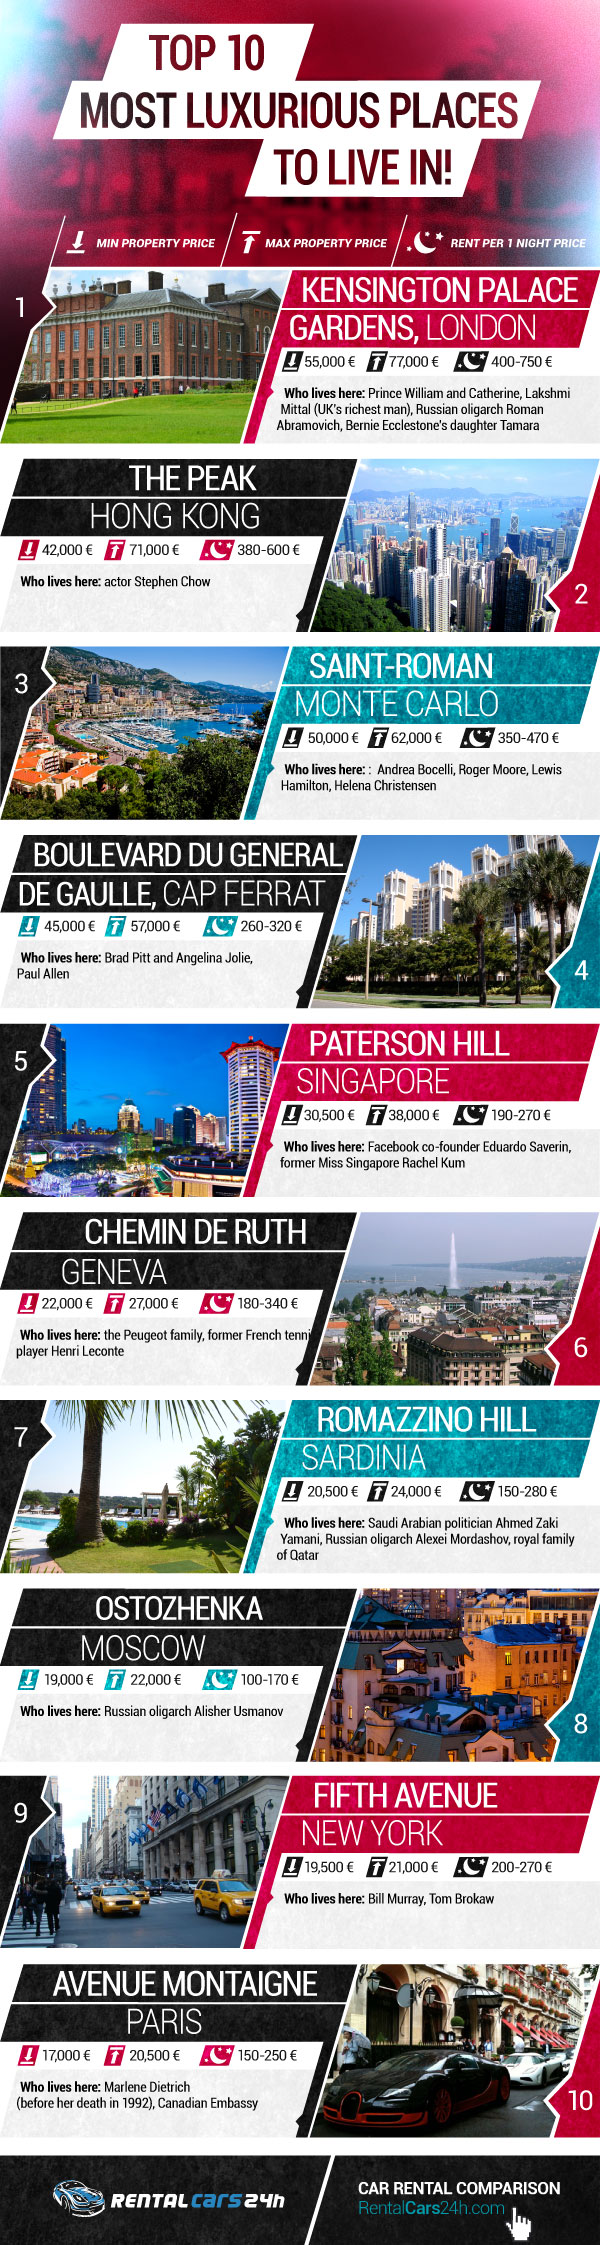 Top 10 most luxurious places to live in rentalcars24h blog for Top 10 best cities to live in